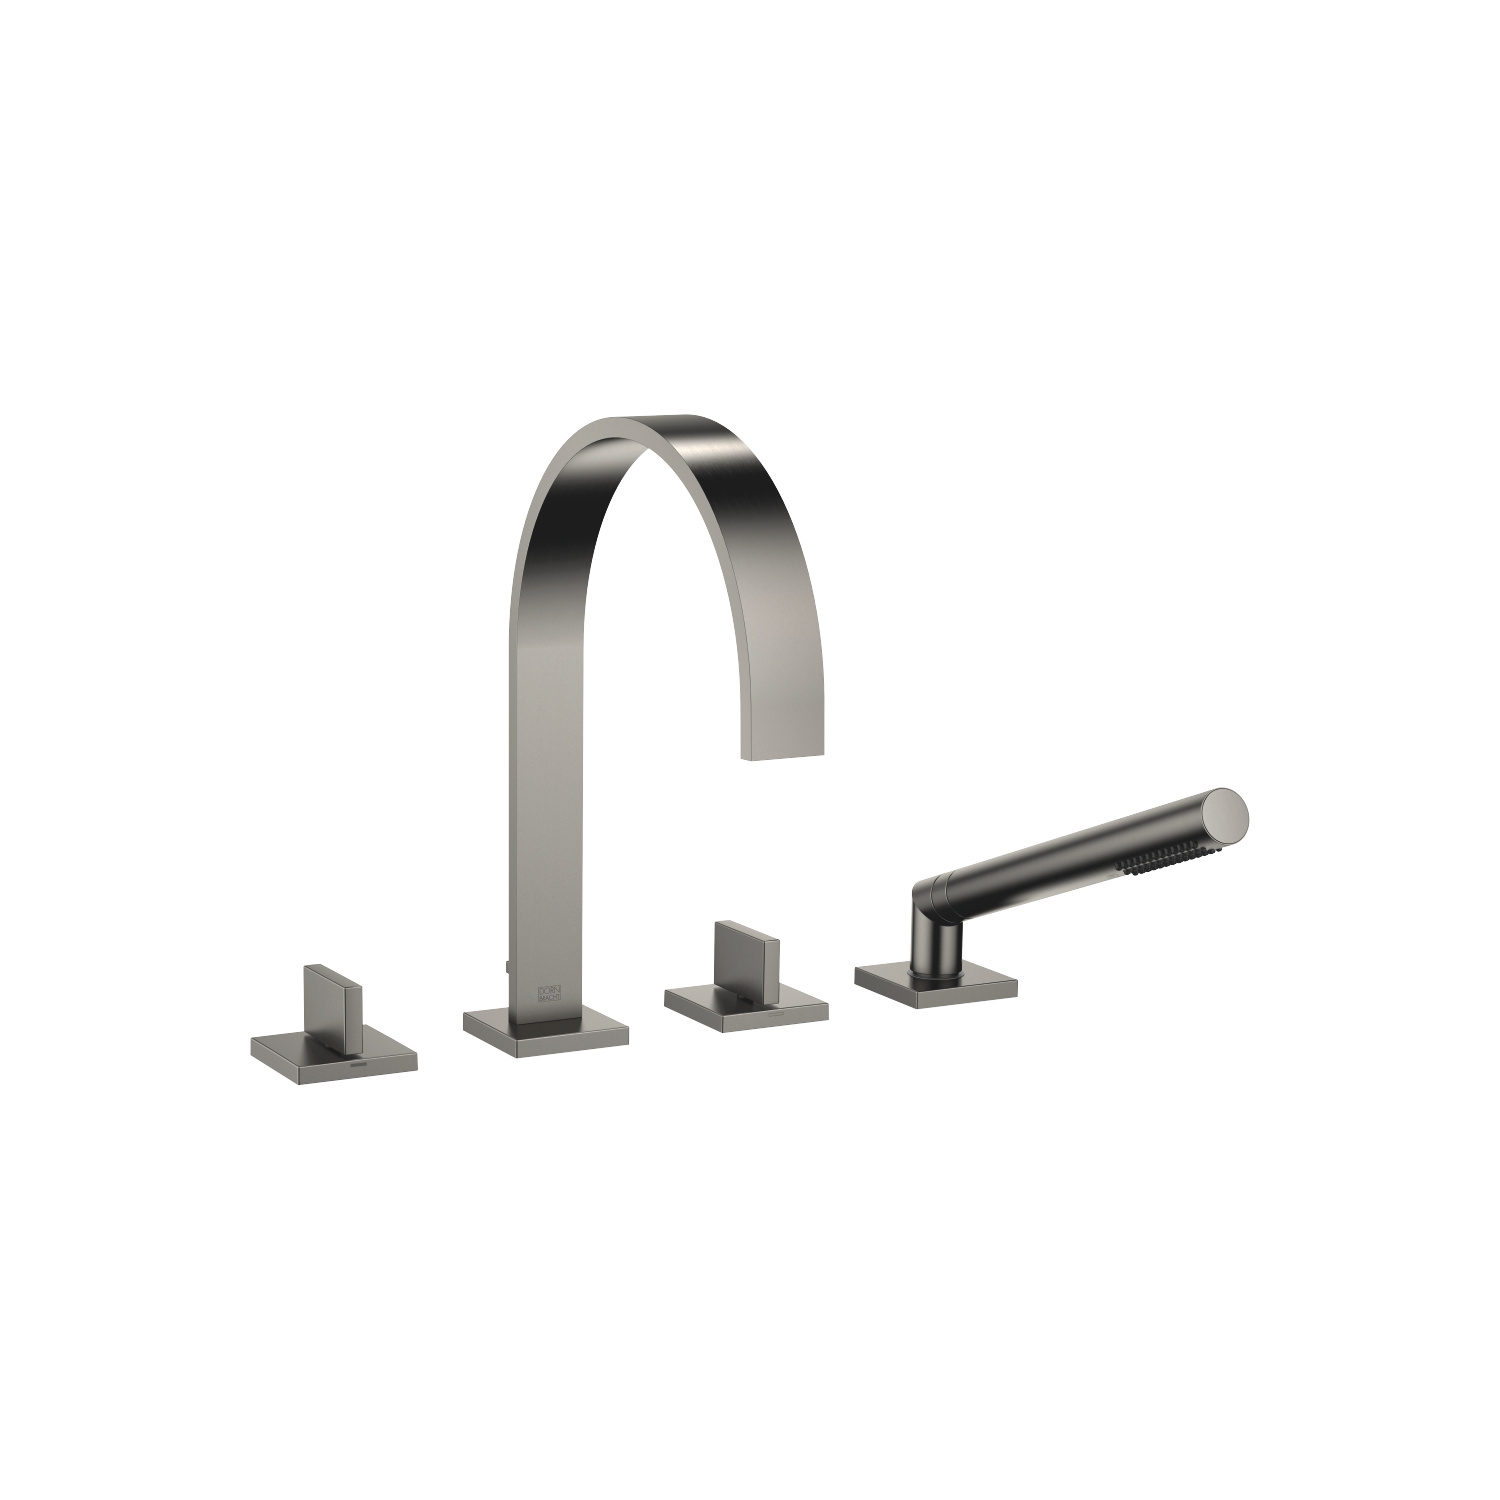 Deck-mounted tub mixer, with hand shower set for deck-mounted tub installation - Dark Platinum matte - 27 532 782-99